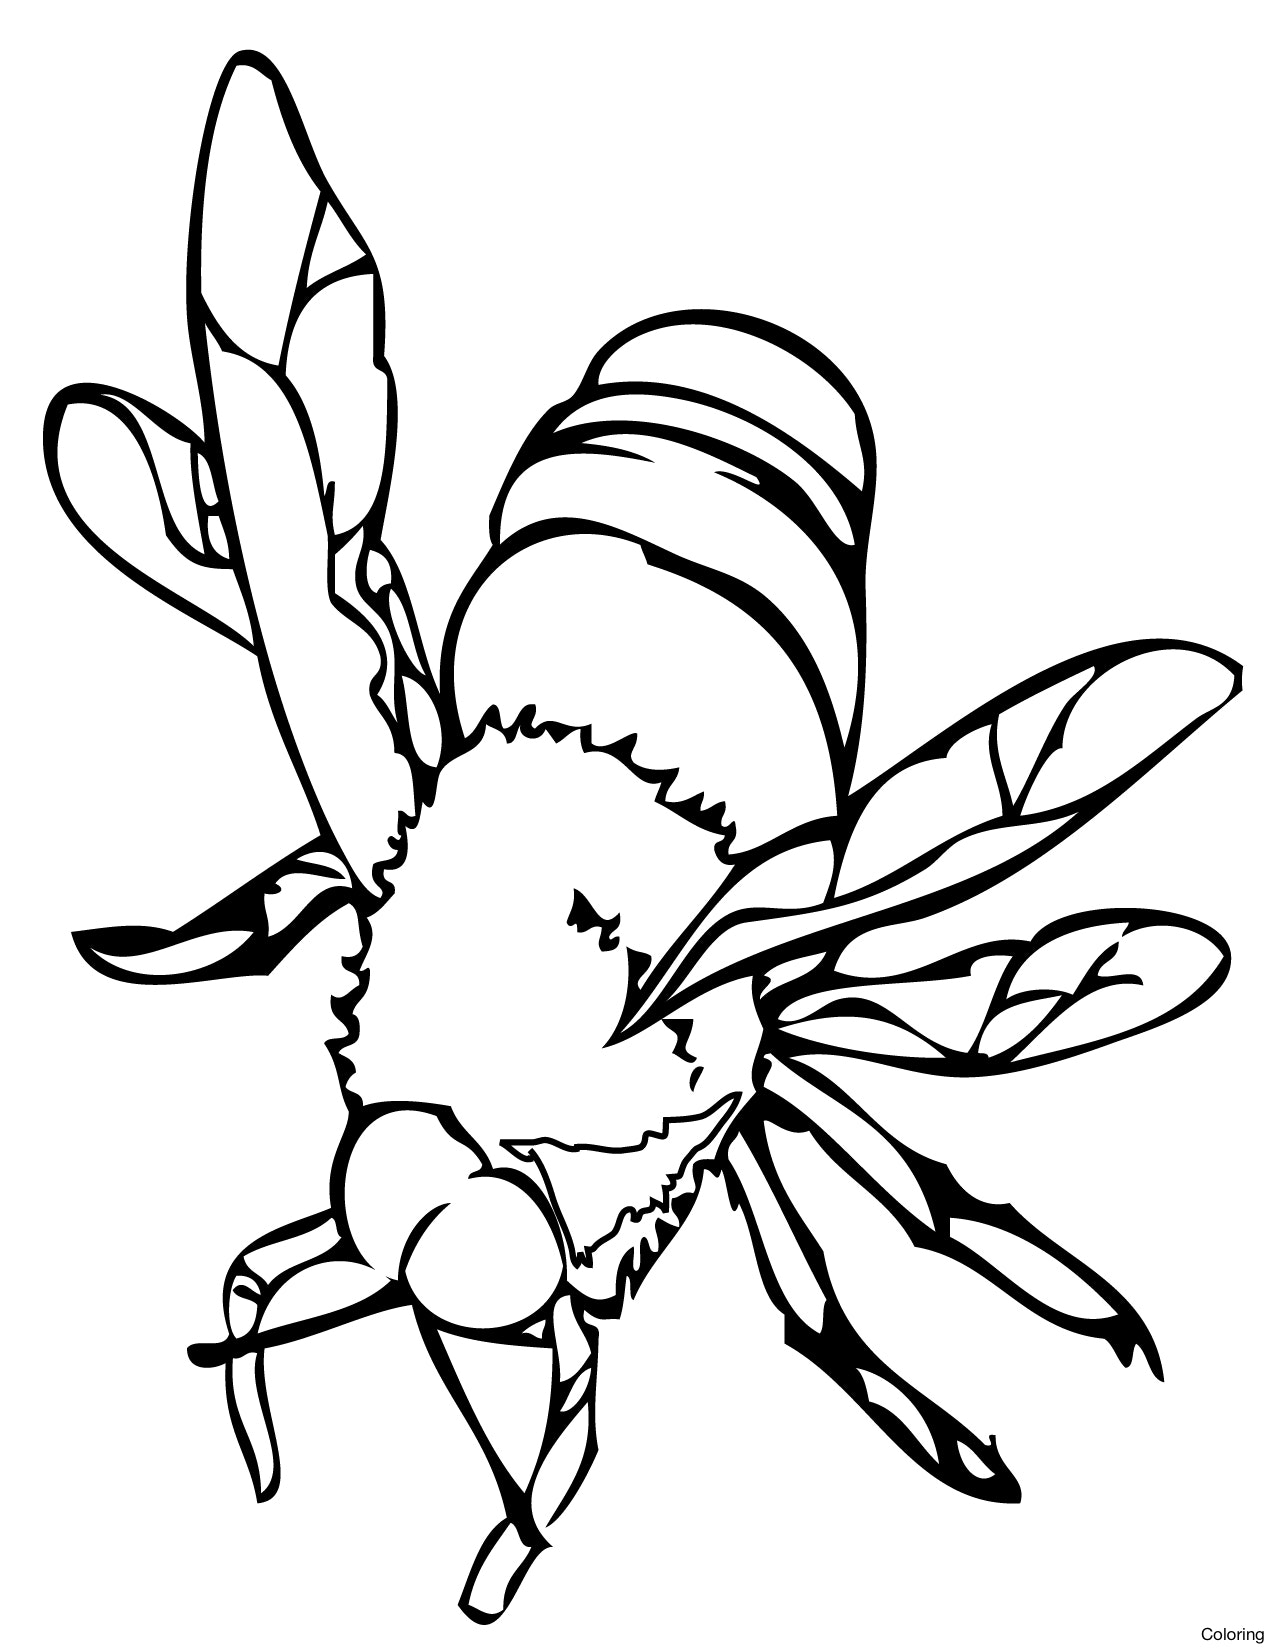 Bumblebee Insect Drawing at GetDrawings.com | Free for personal use ...